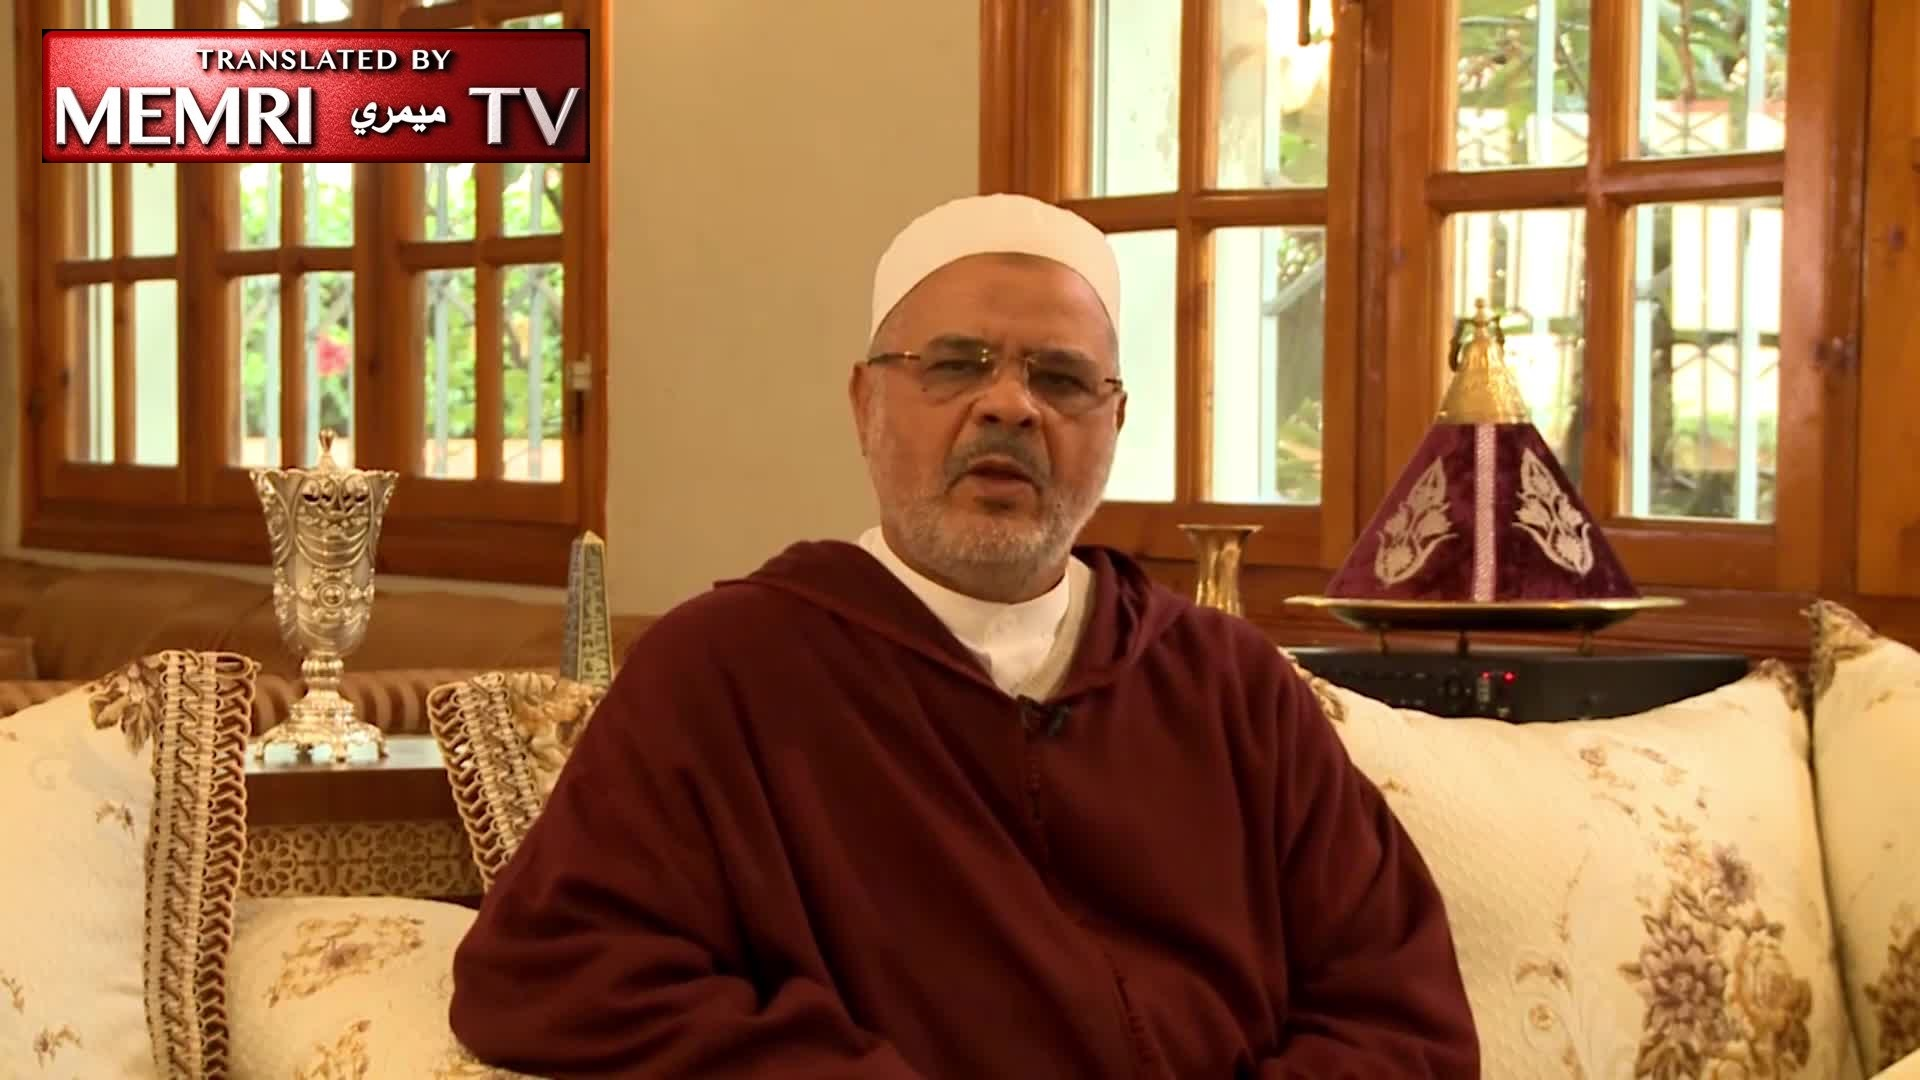 Prominent Moroccan Islamic Scholar Ahmed Raïssouni Criticizes Egyptian Muslim Brotherhood: They Don't Listen to Anyone; I Was Happy when Morsi Was Ousted